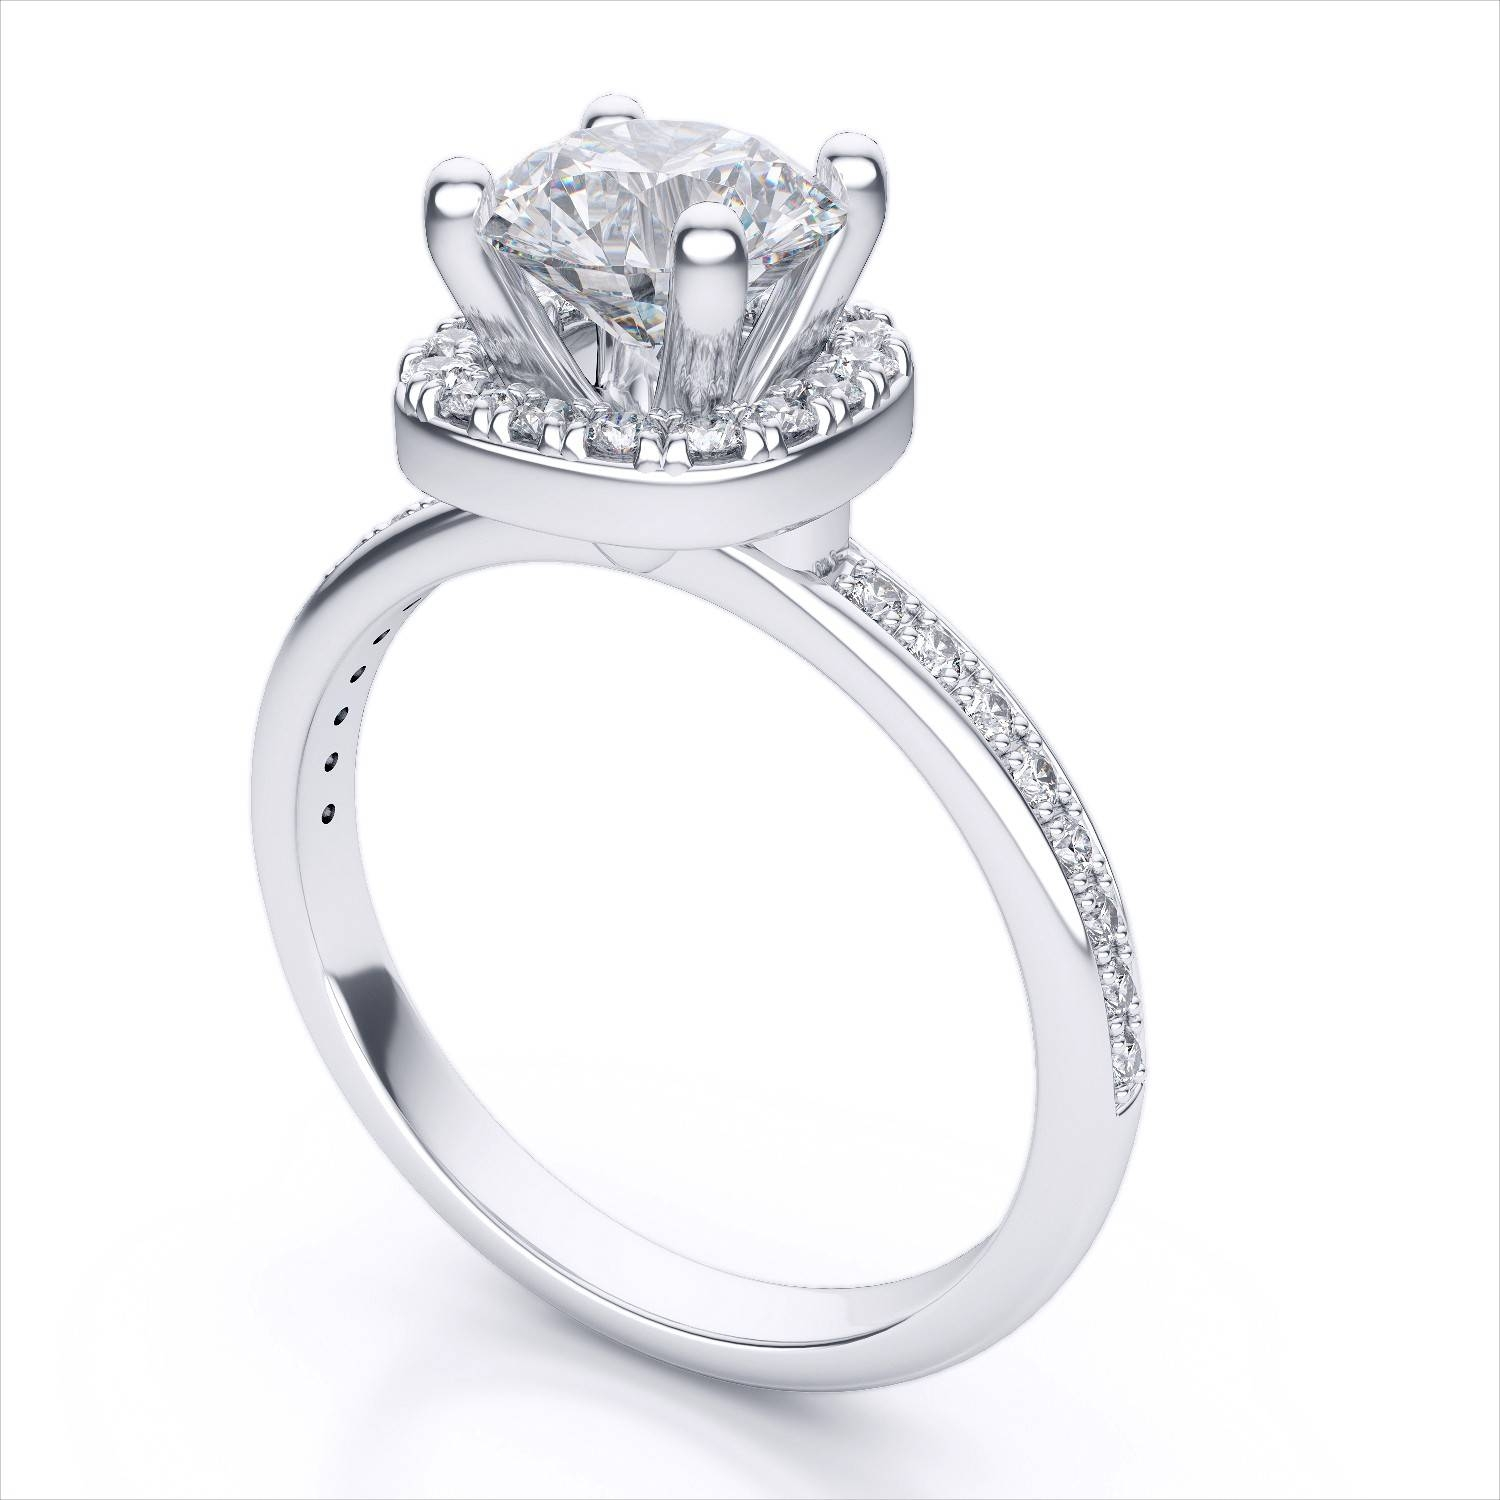 rings engagement and duo ritani jewellery most styles settings ring blog popular